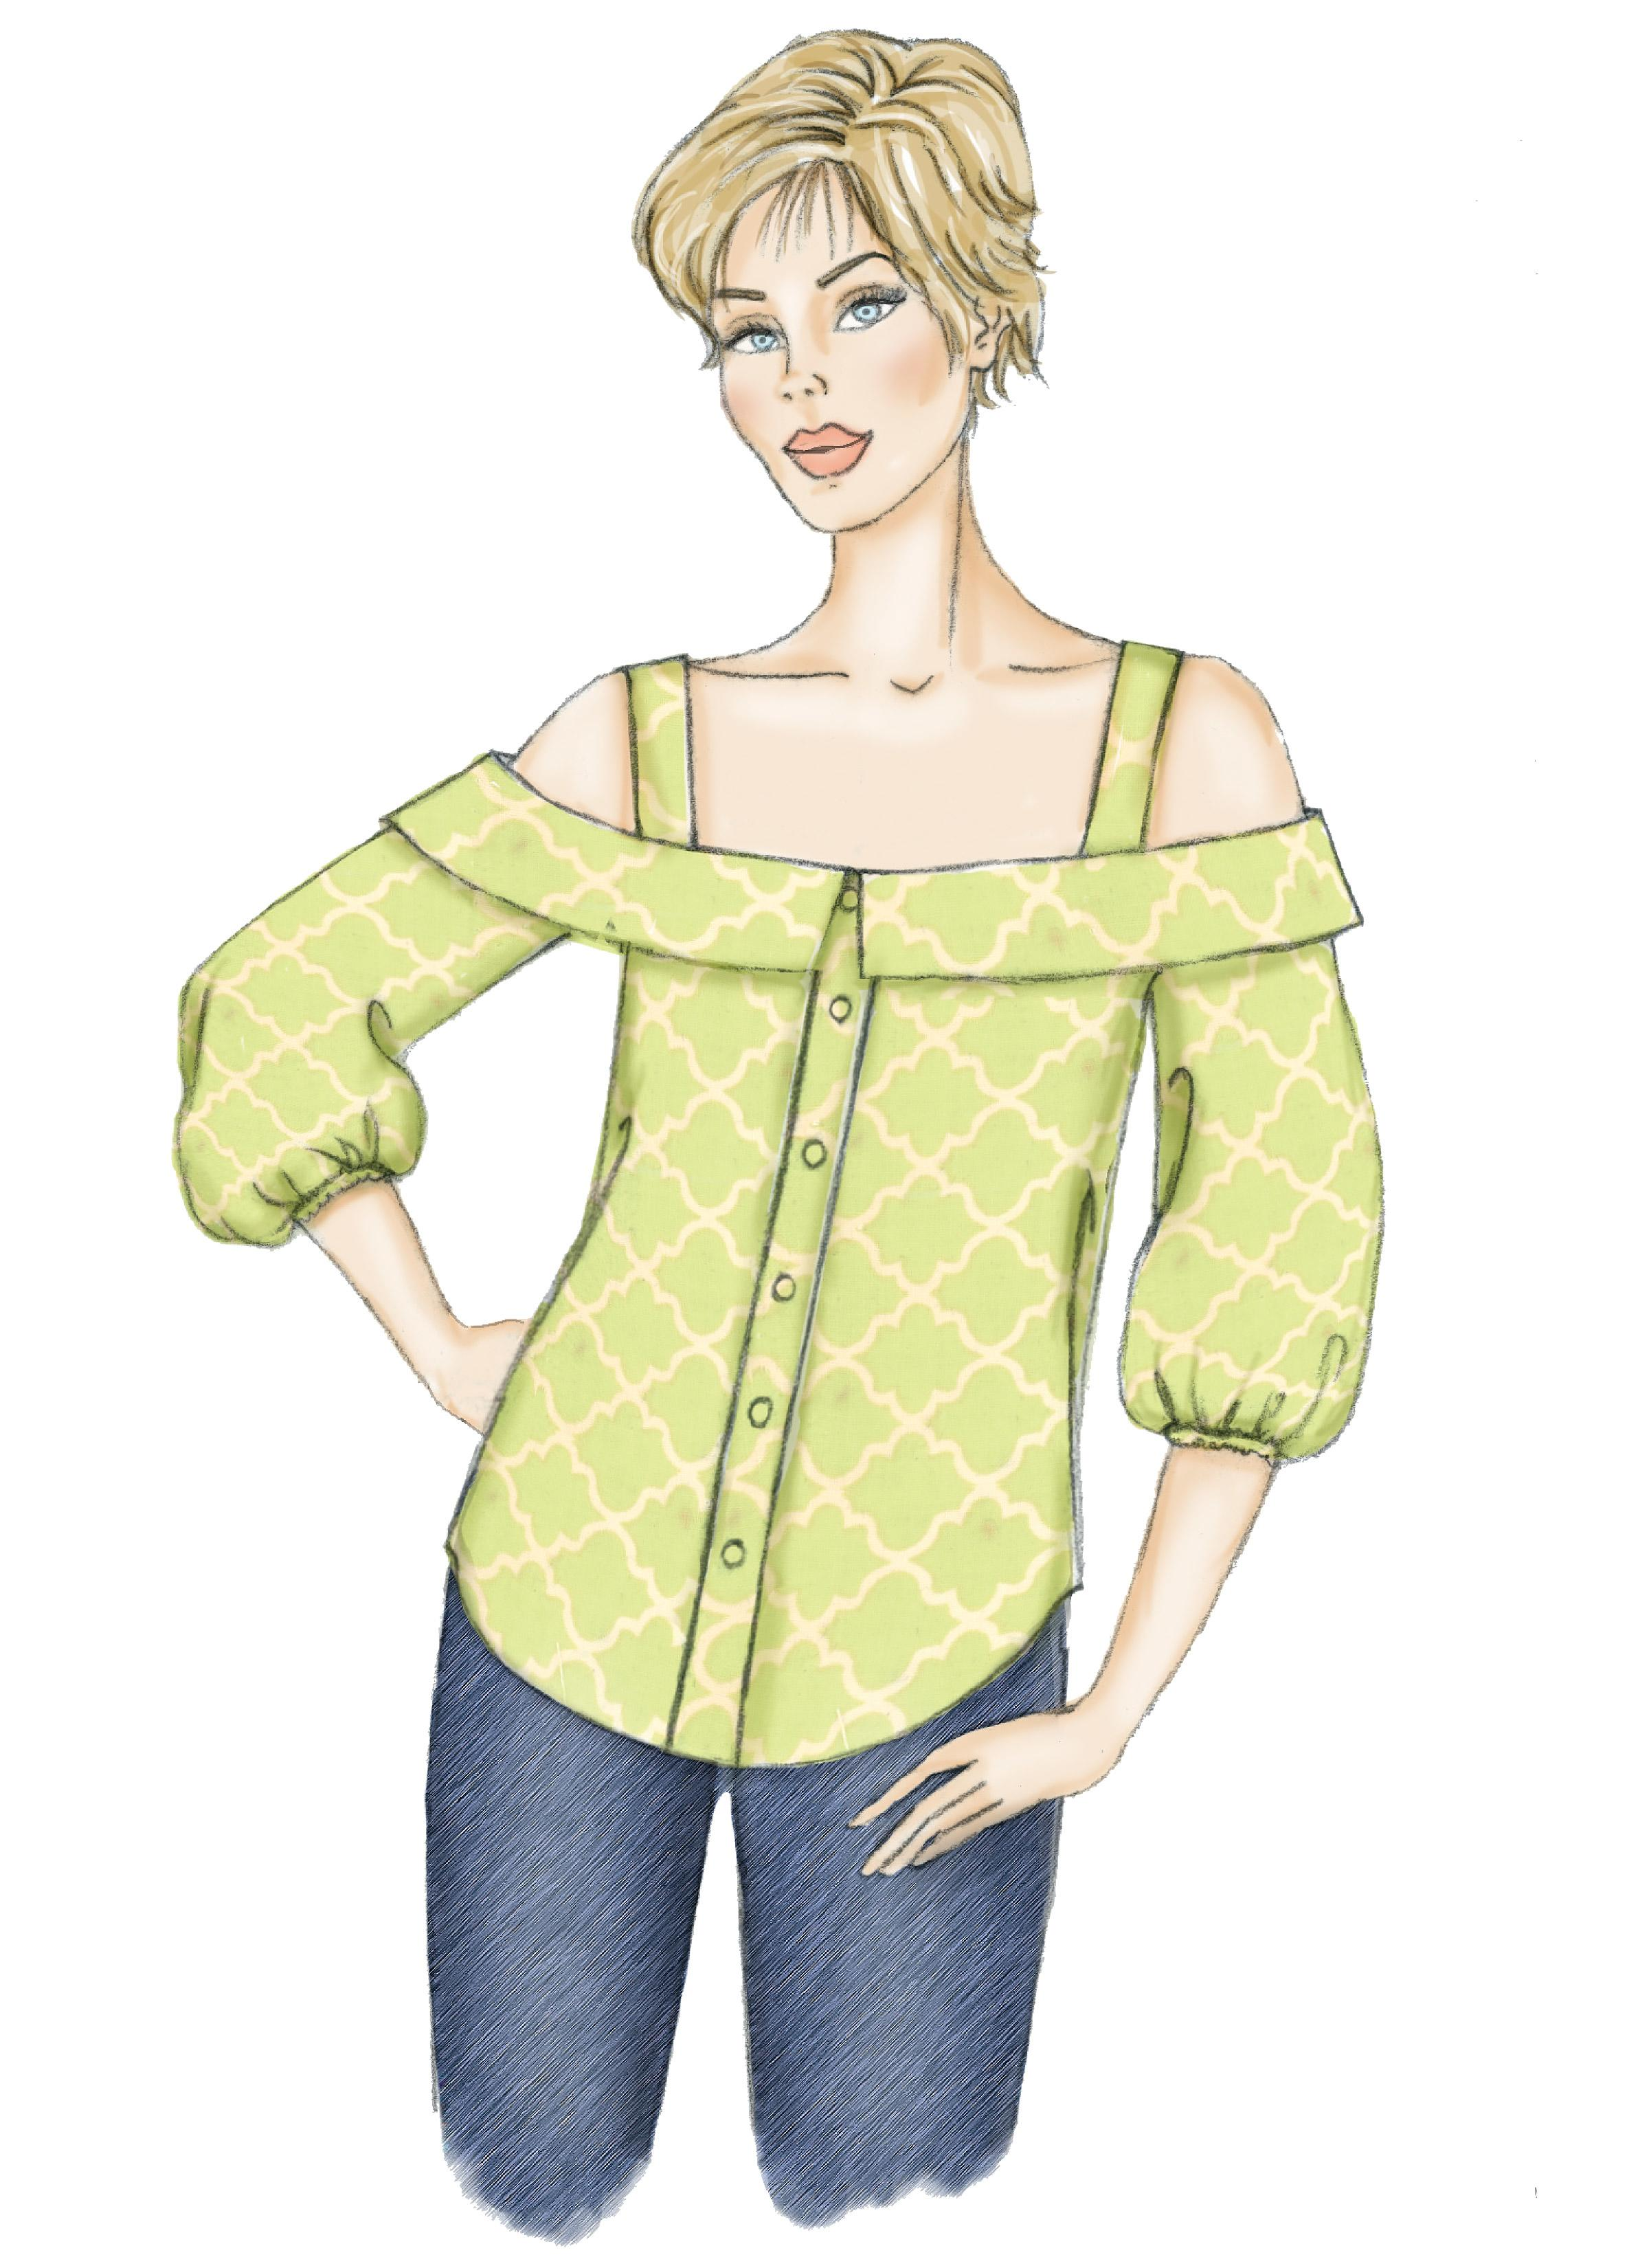 Butterick B6562 Misses' Top